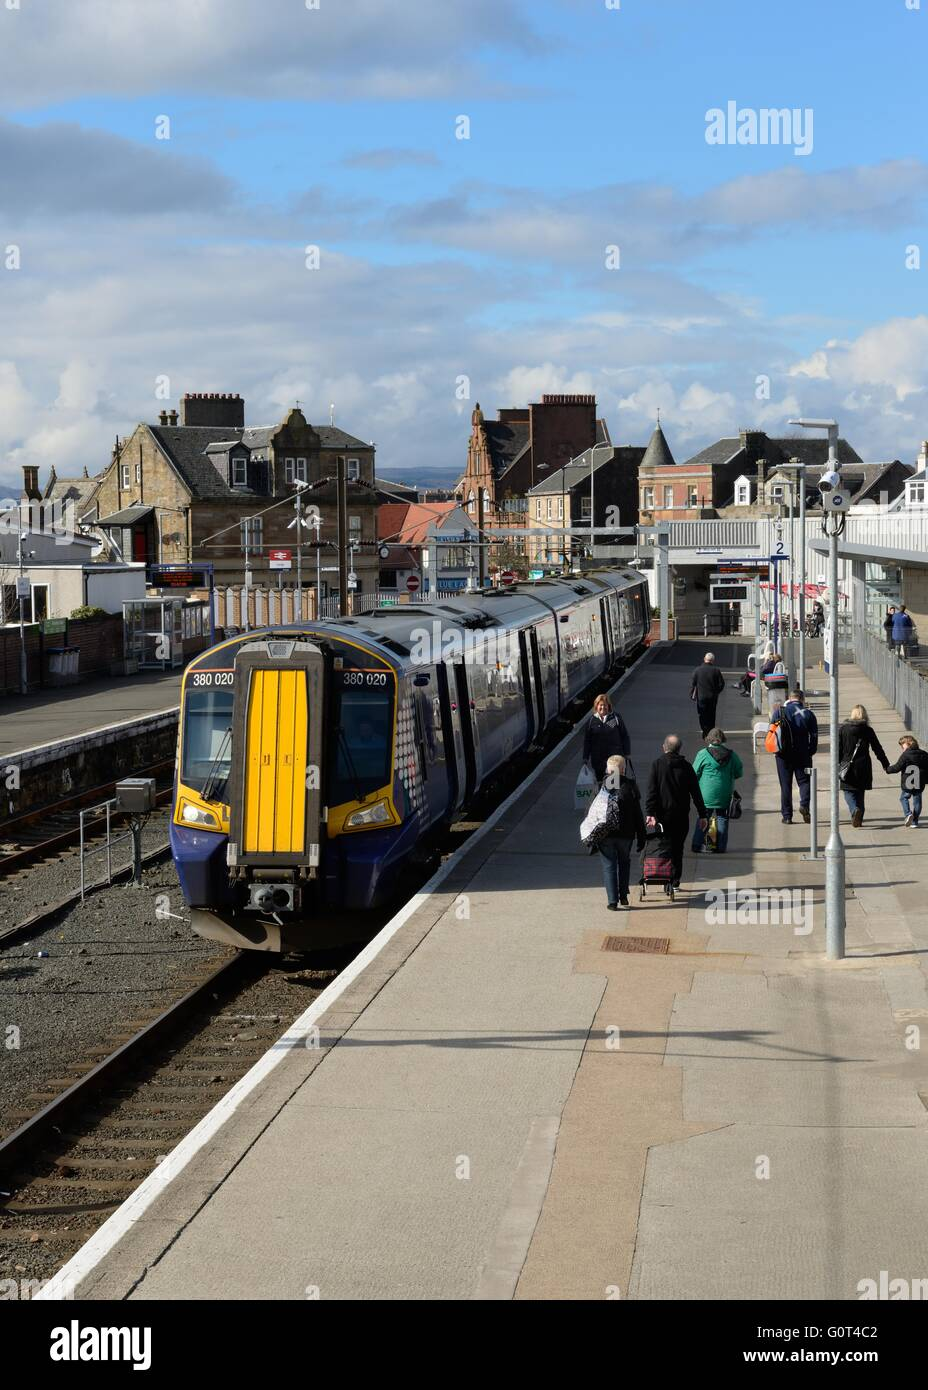 A Scotrail commuter train waiting at the platform in the seaside town of Largs, in Scotland, UK - Stock Image